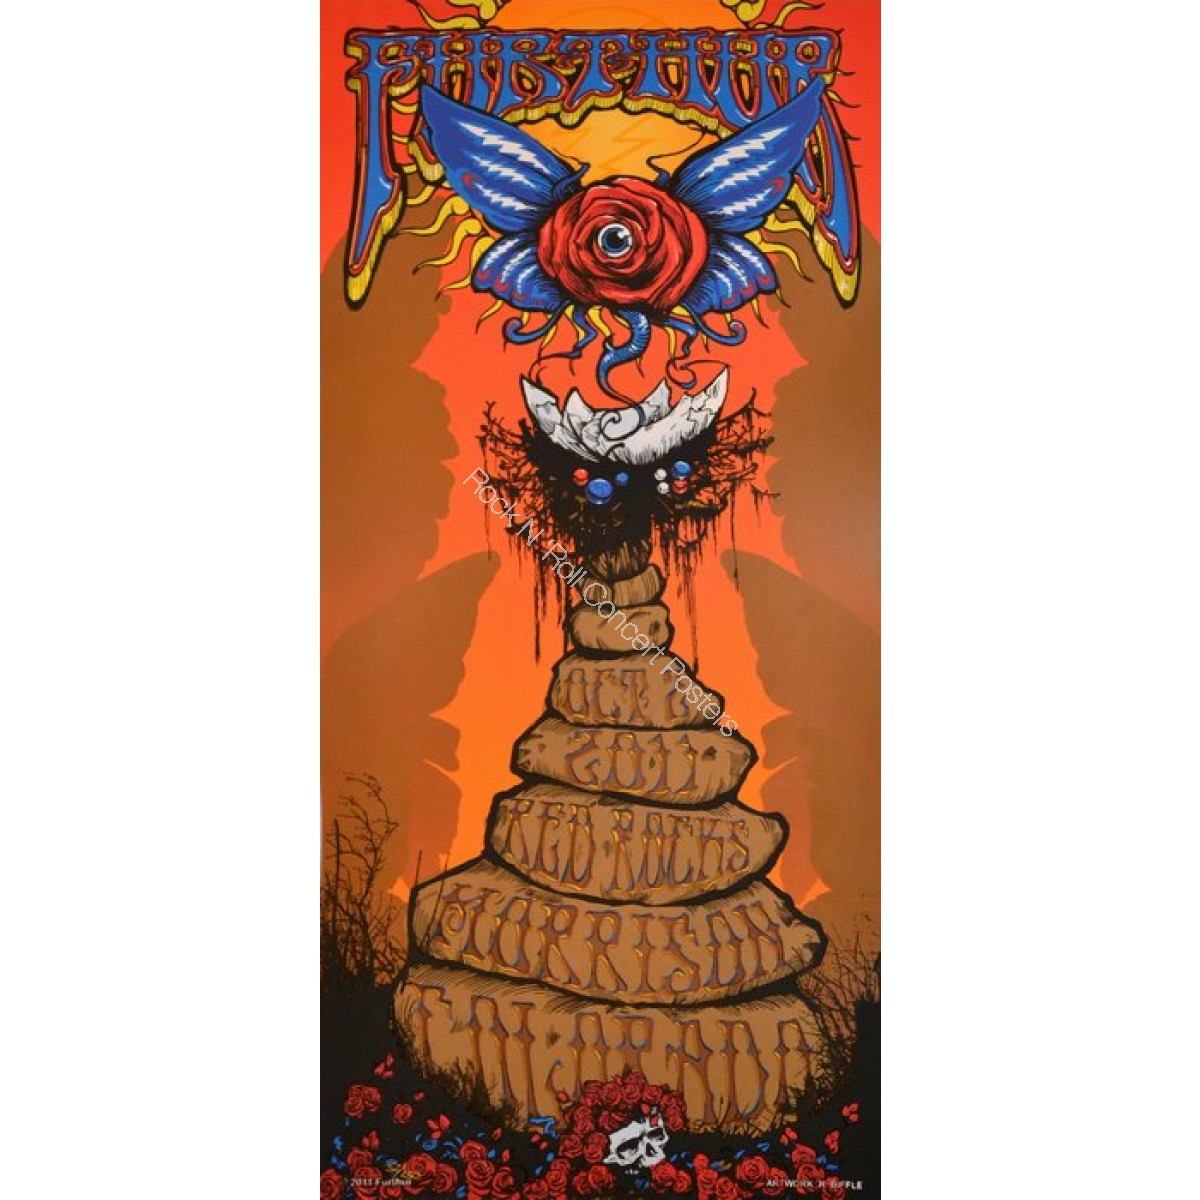 Furthur @ Red Rocks 10/2/11 Official print